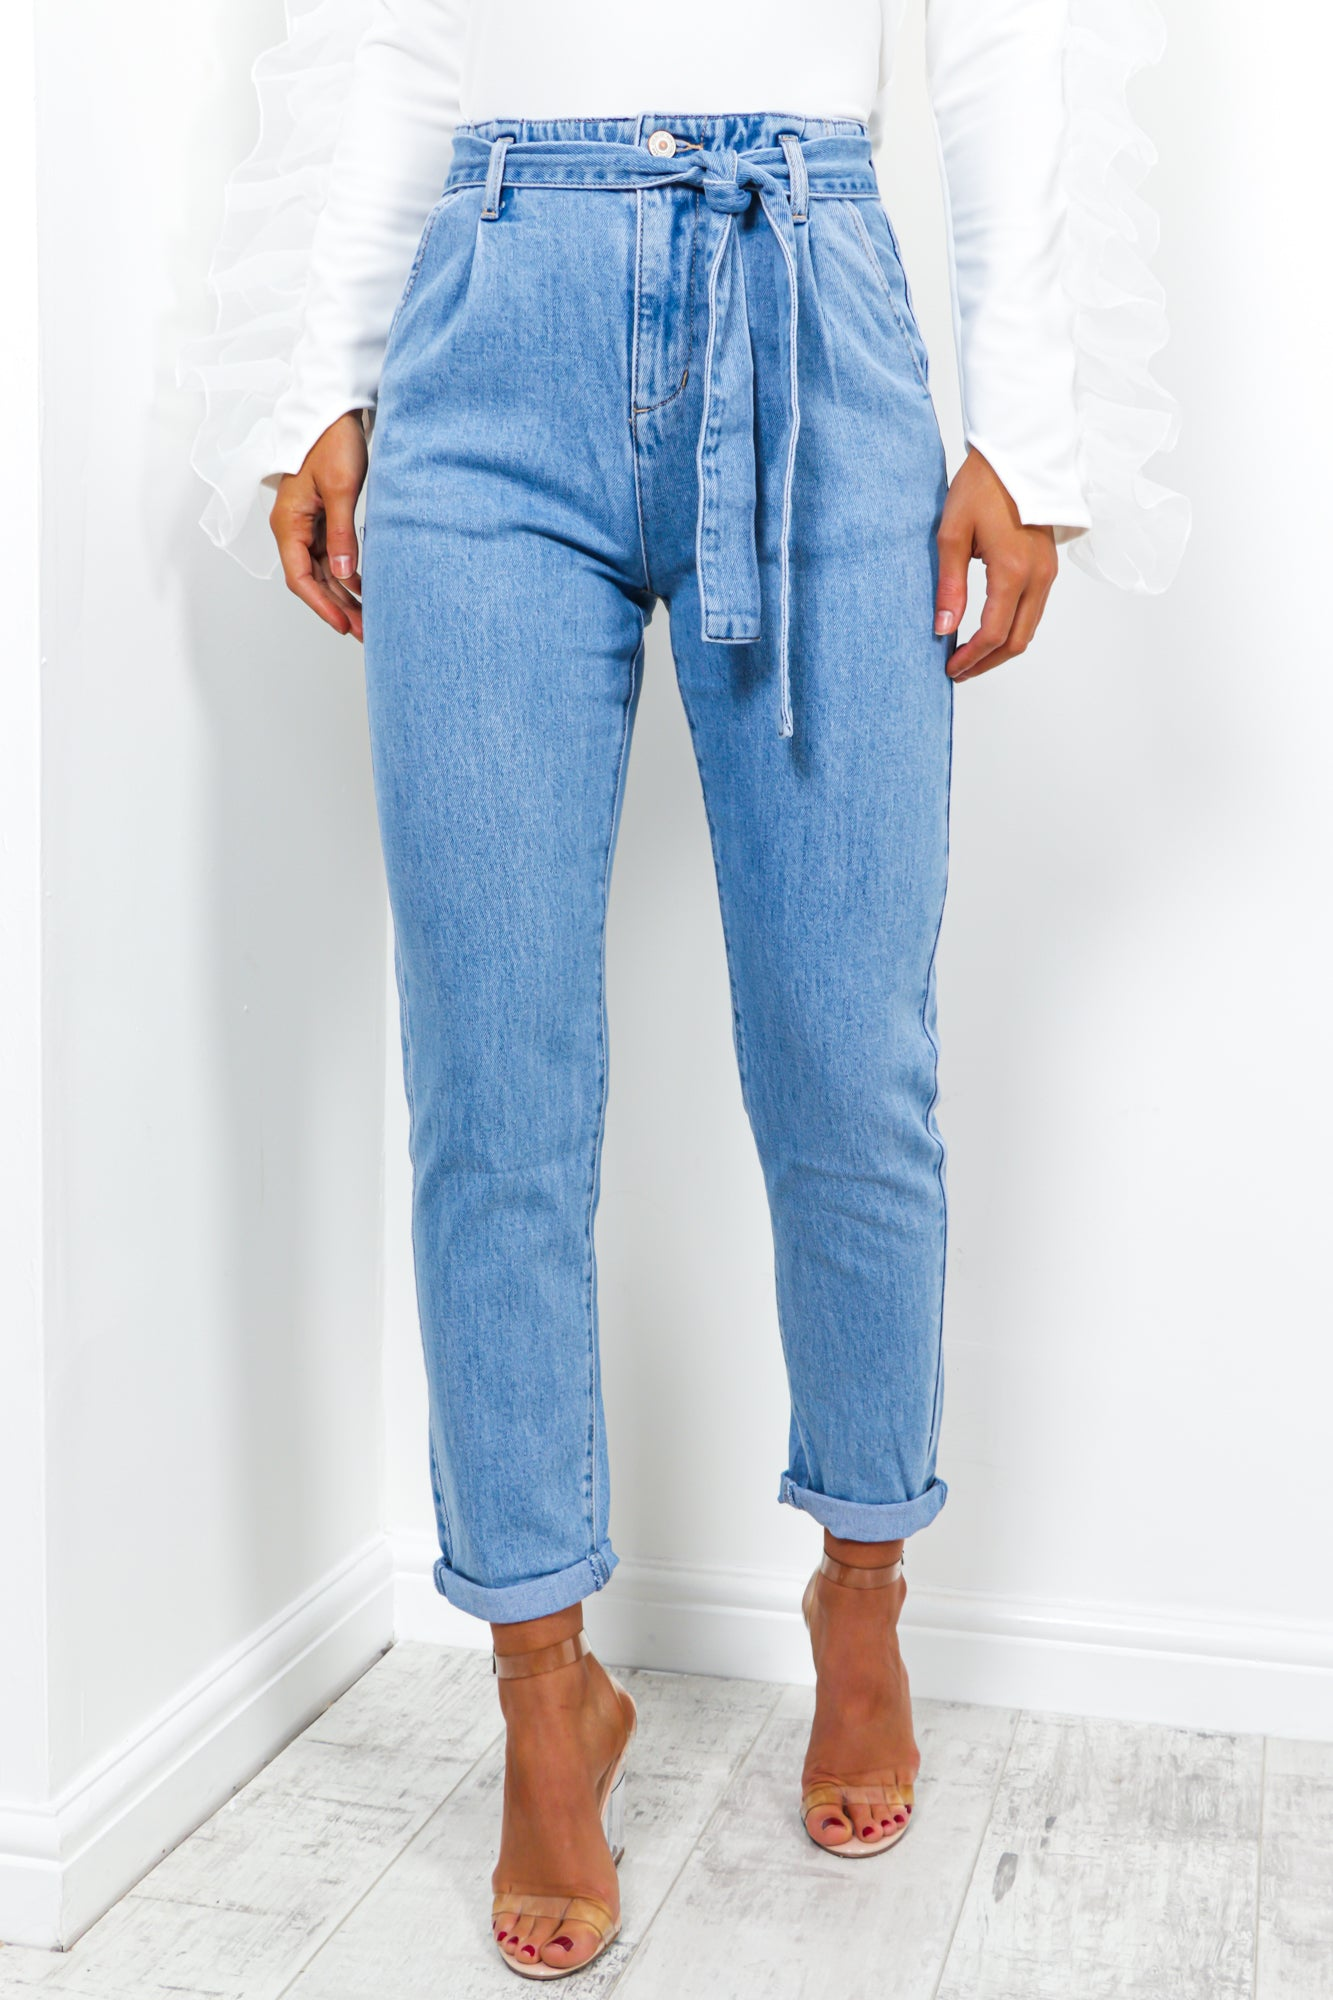 Jeans Come True - Jeans In BLUE/DENIM